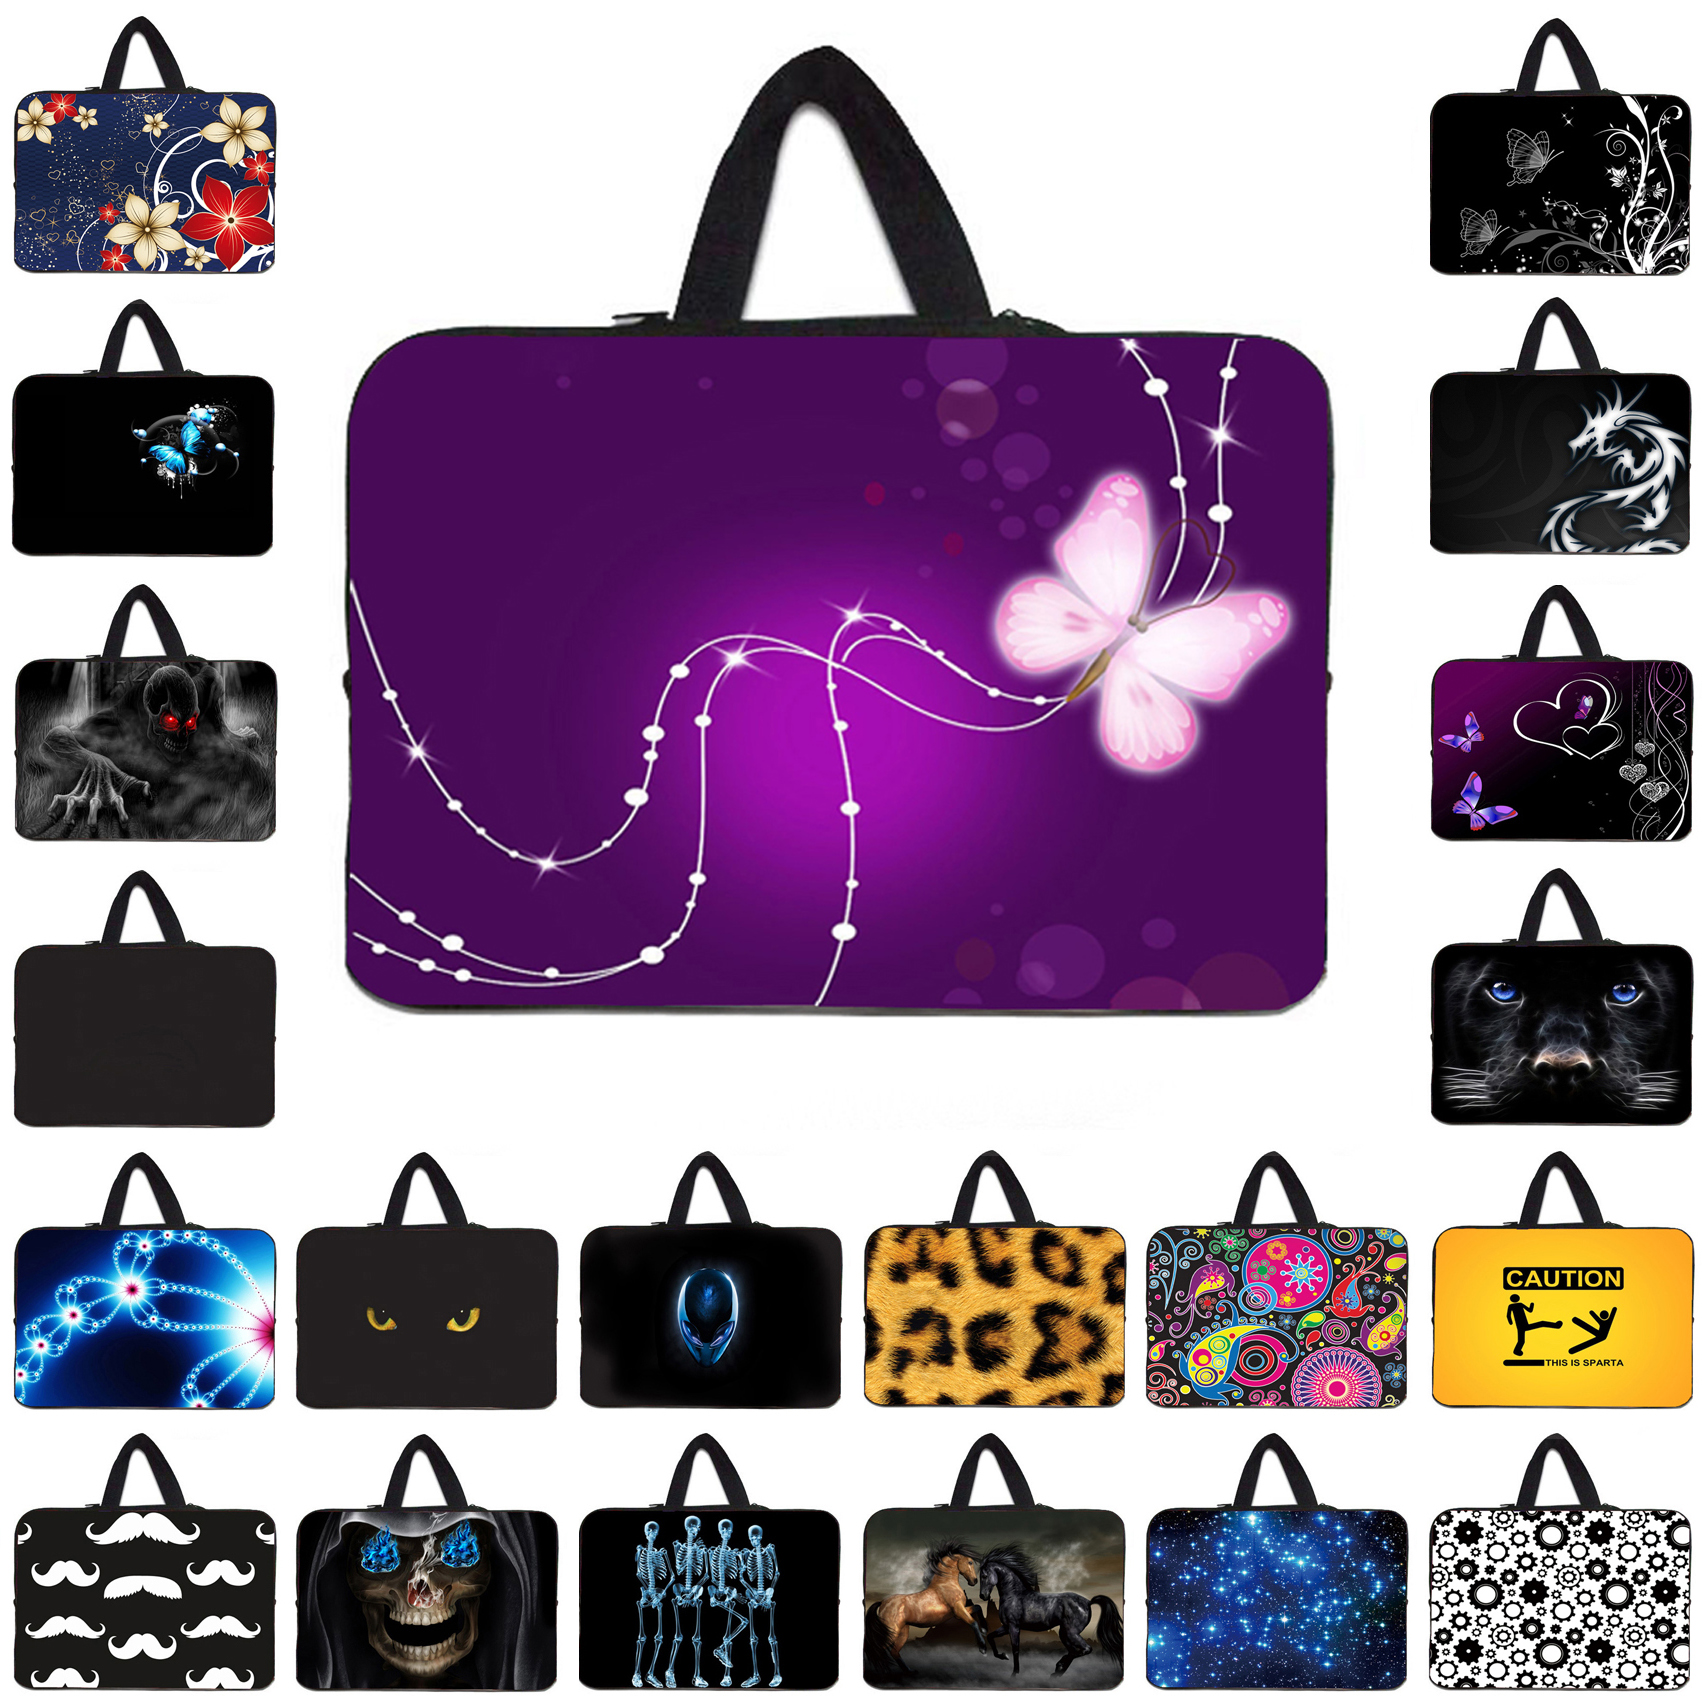 Soft Fashion 10 12 13 14 15.4 15.6 17 inch Notebook Laptops Neoprene Inner Sleeve Case Bags Tablet 10.1 11.6 Mini PC Protect Bag